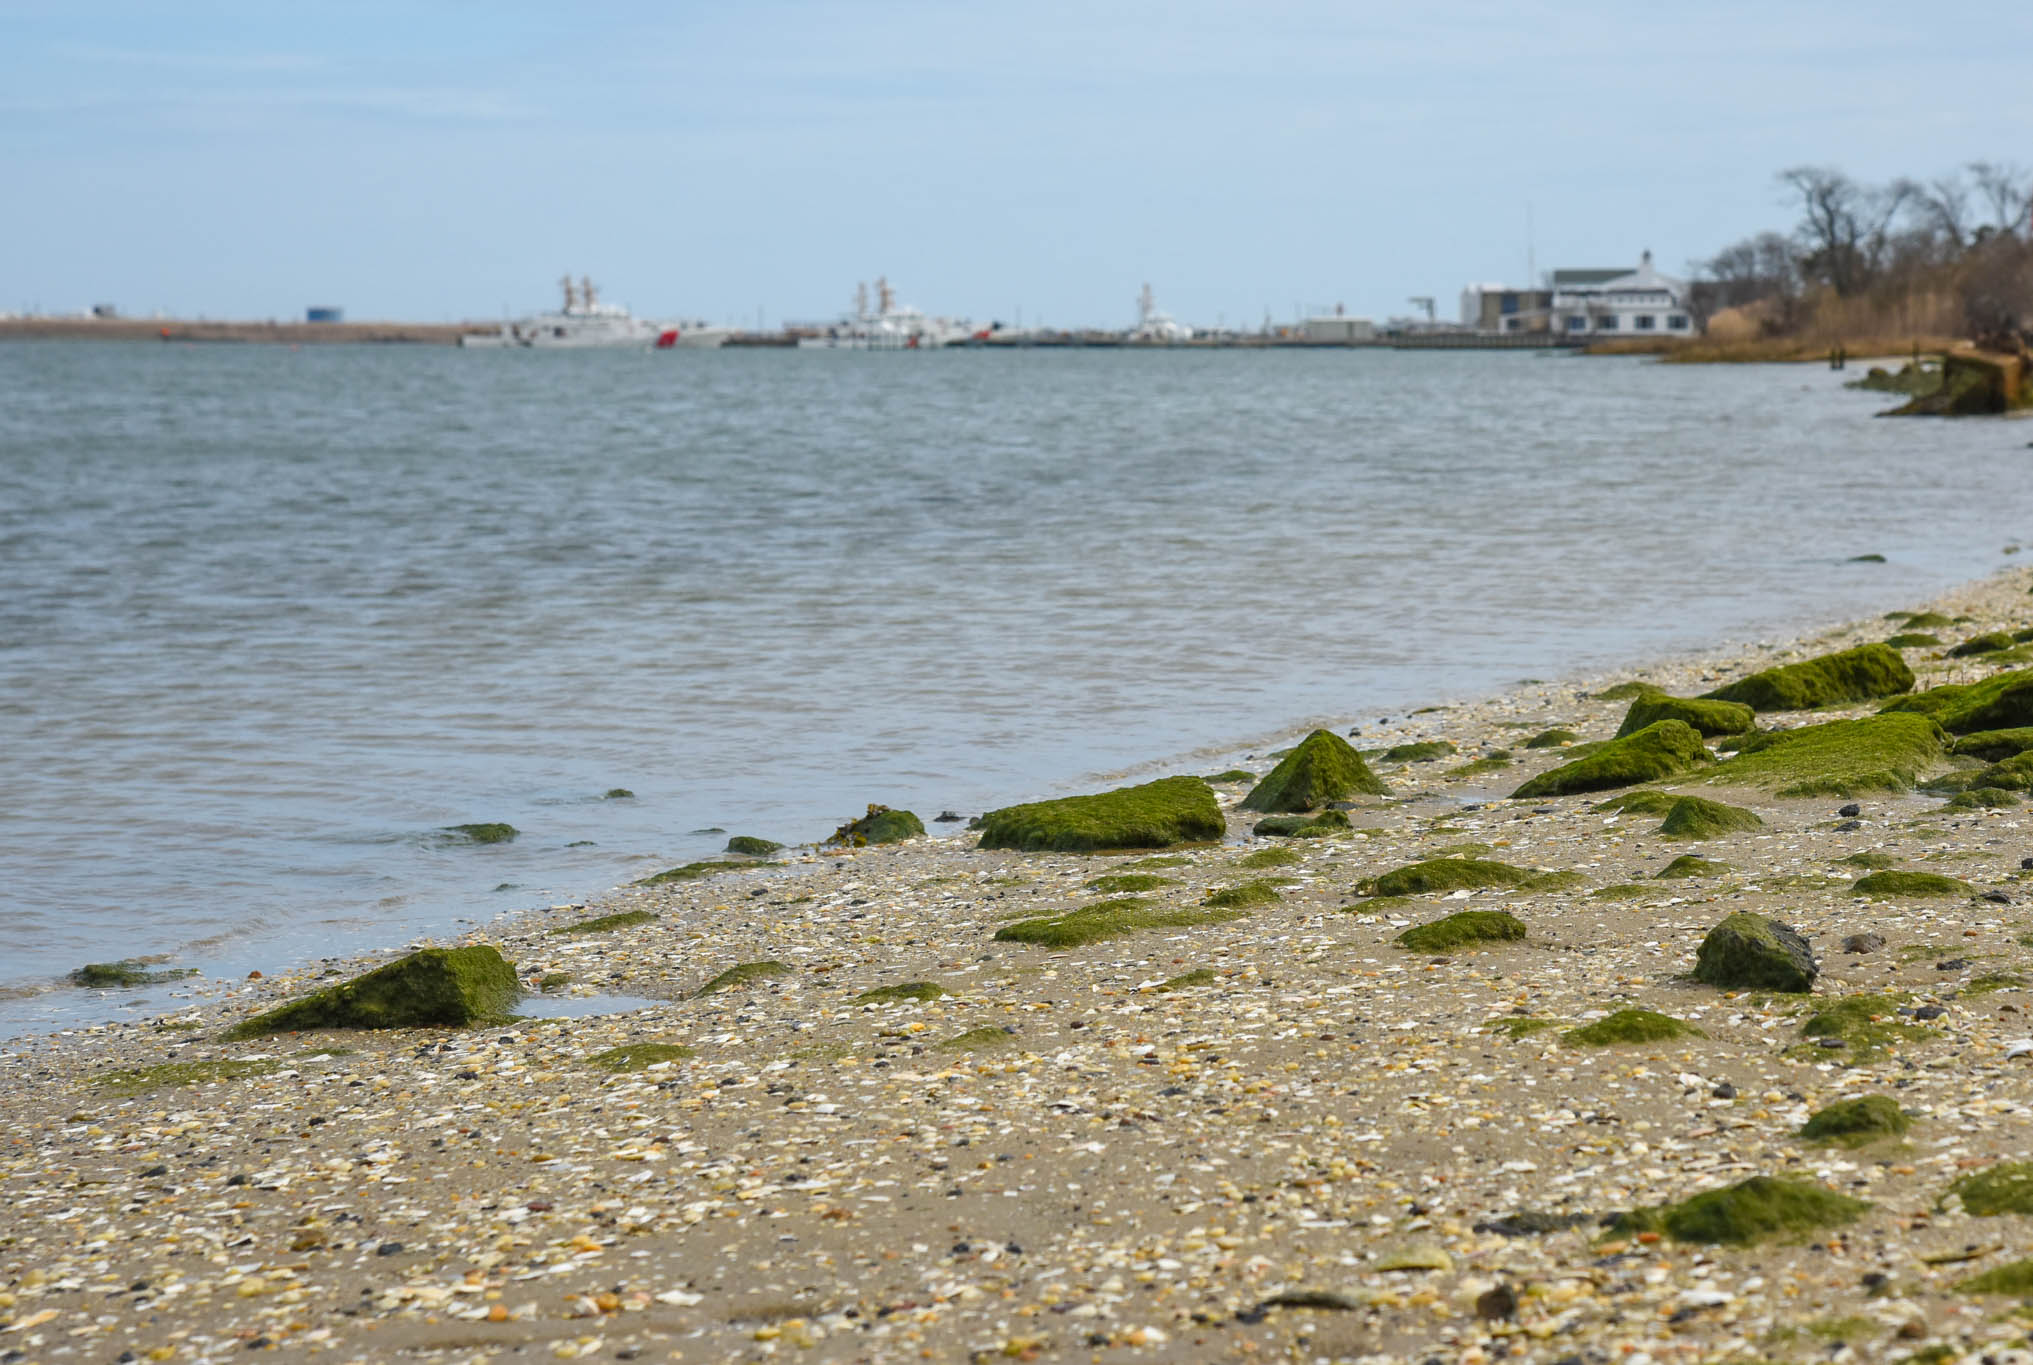 Walking at the edge of the Cape May Harbor.